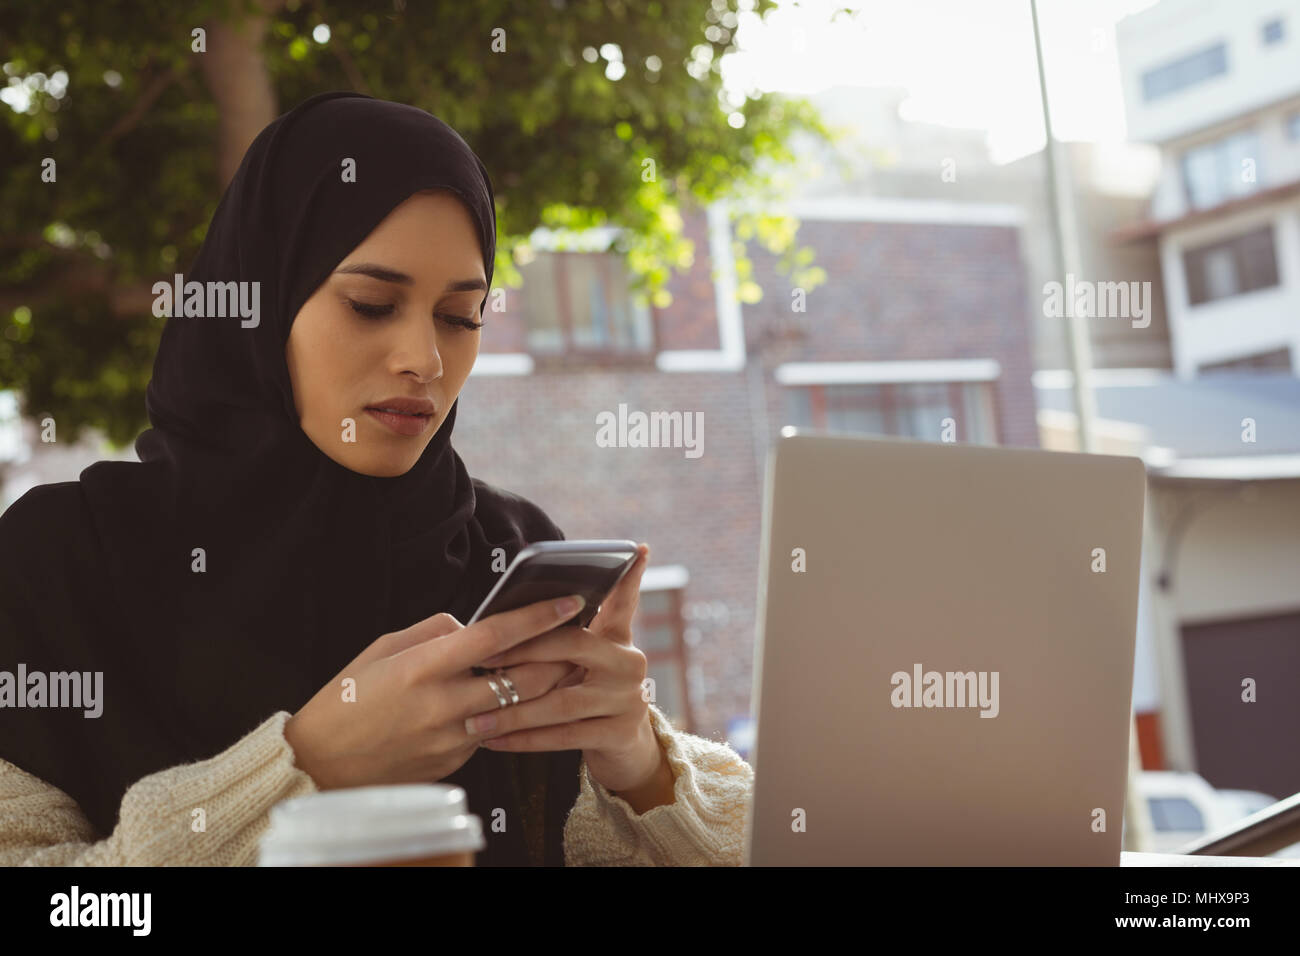 Hijab woman using mobile phone at pavement cafe - Stock Image